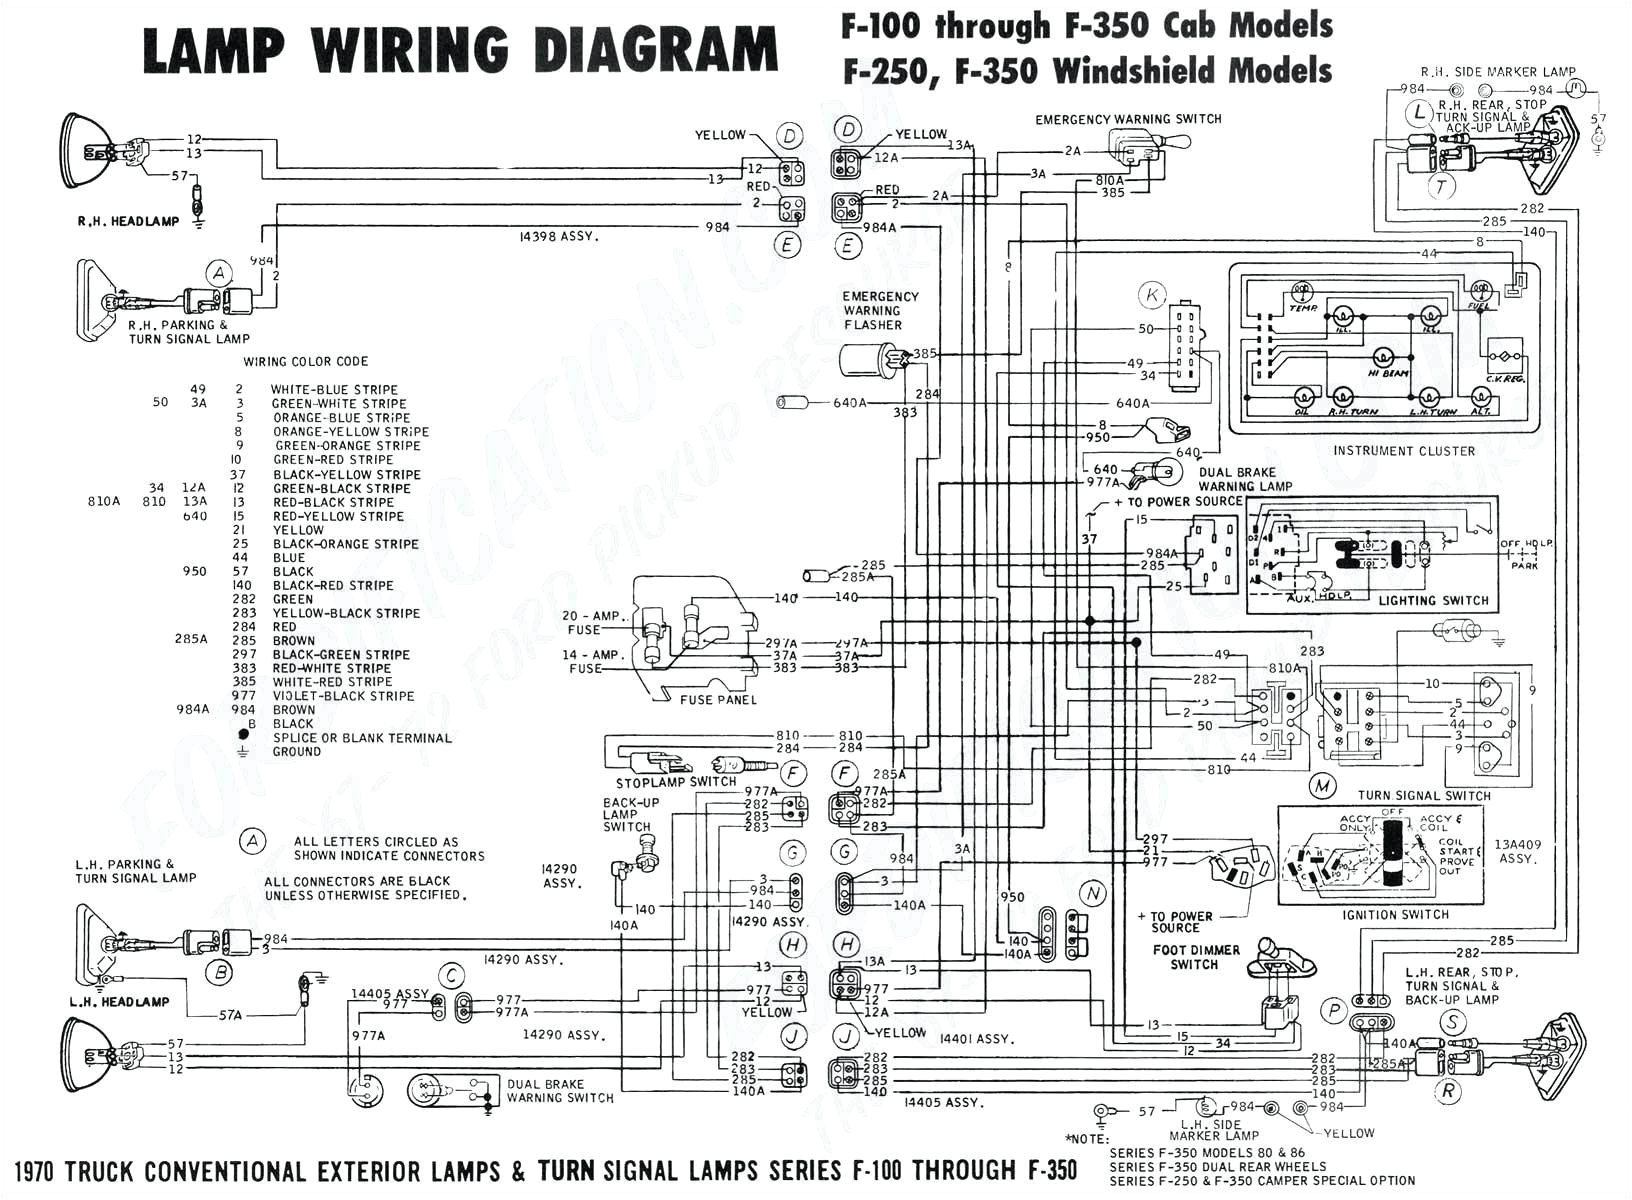 pioneer avh p2300dvd wiring diagram awesome pioneer avh p2300dvd wiring diagram electrical wiring diagrams of pioneer avh p2300dvd wiring diagram jpg